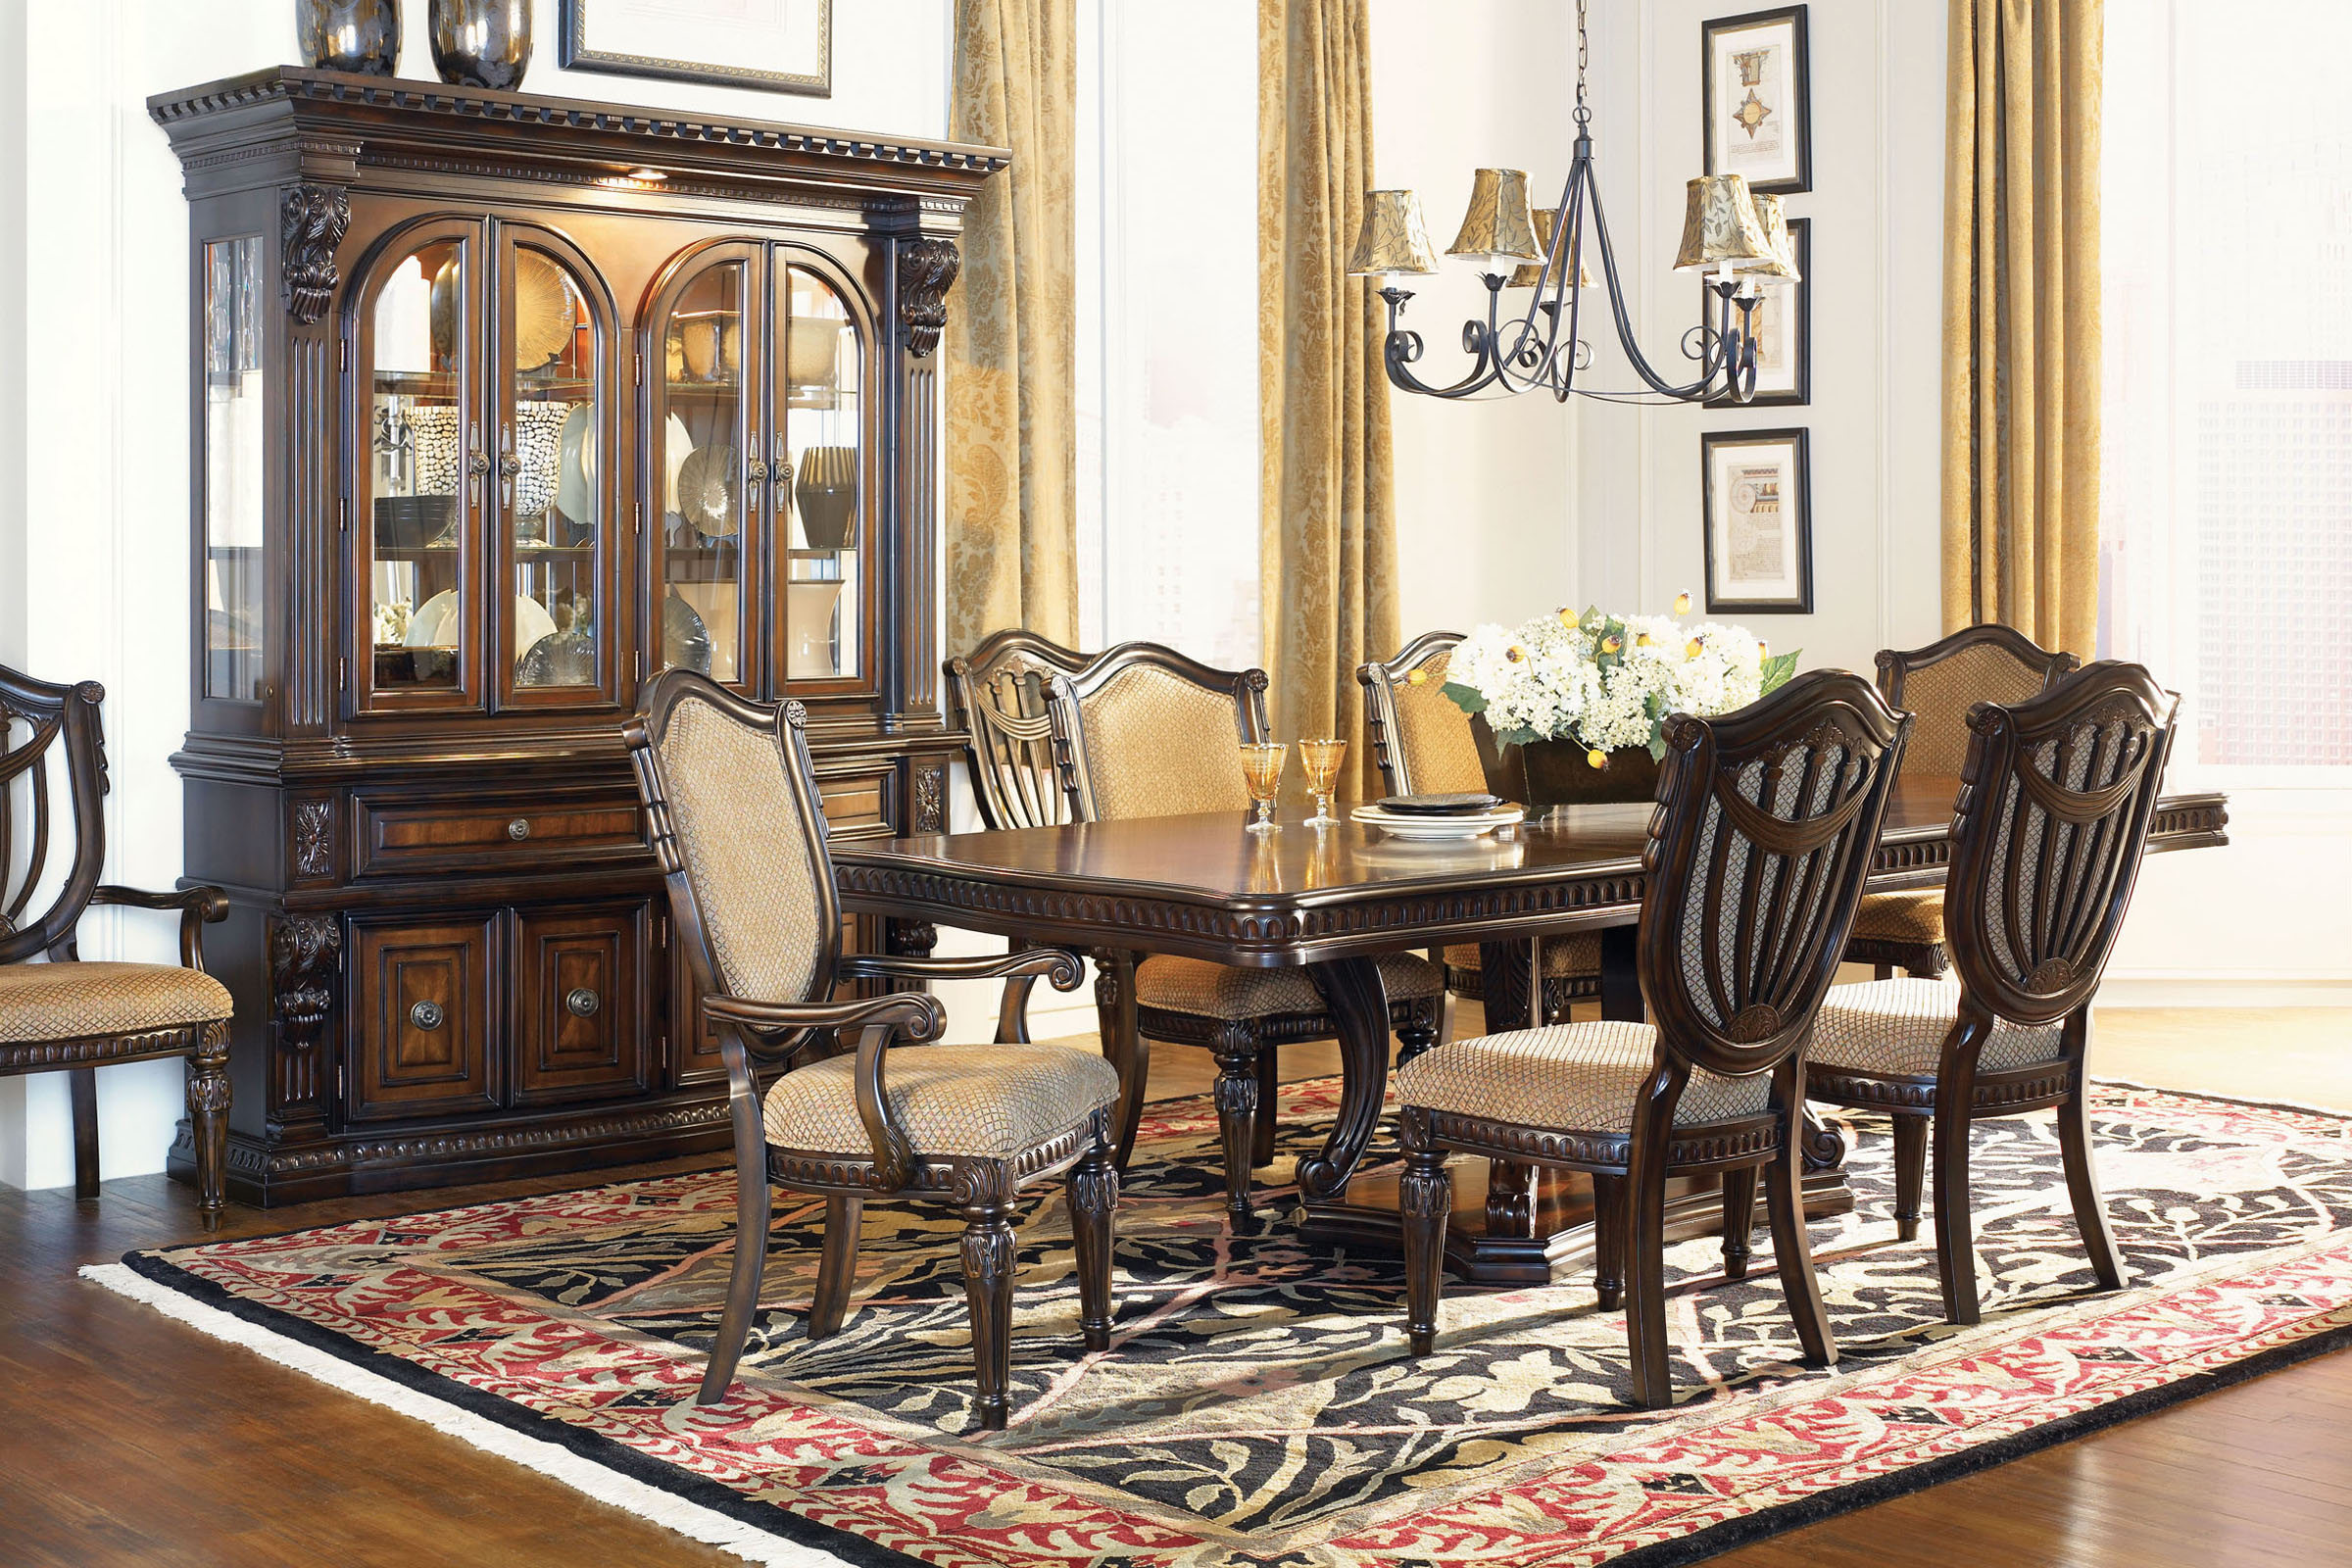 52830206f7 INACTIVE - DO NOT USE Dining Room Collection